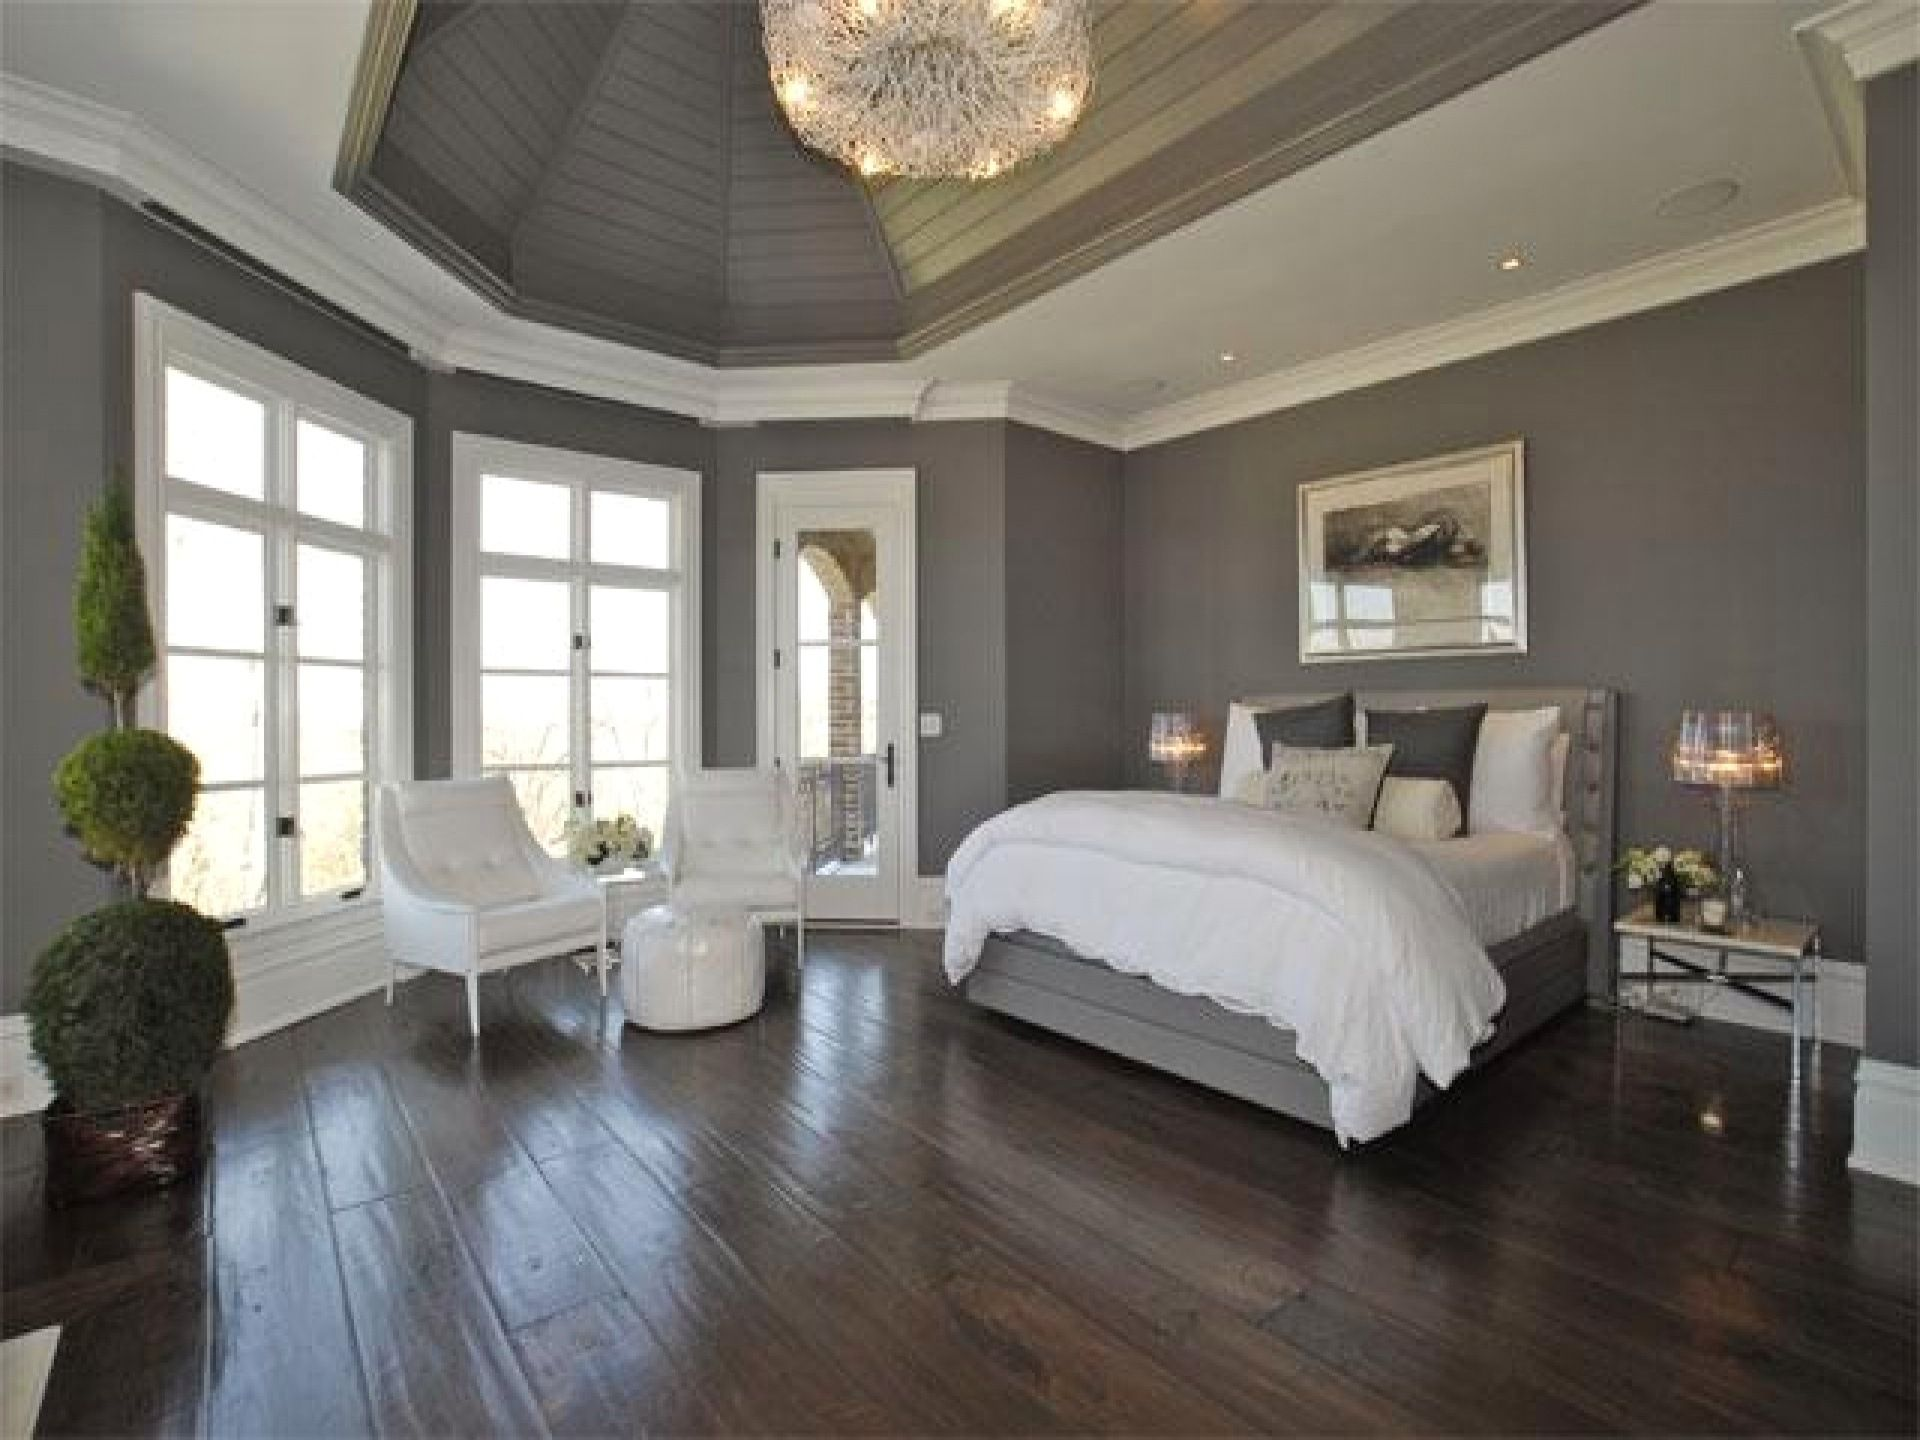 Dark Wood Floor Bedroom Elegant Living Room Decorating Ideas Living Within 20 Elegant Dark Hardwood Floor Bedroom Ideas Gray Master Bedroom Home Bedroom Home